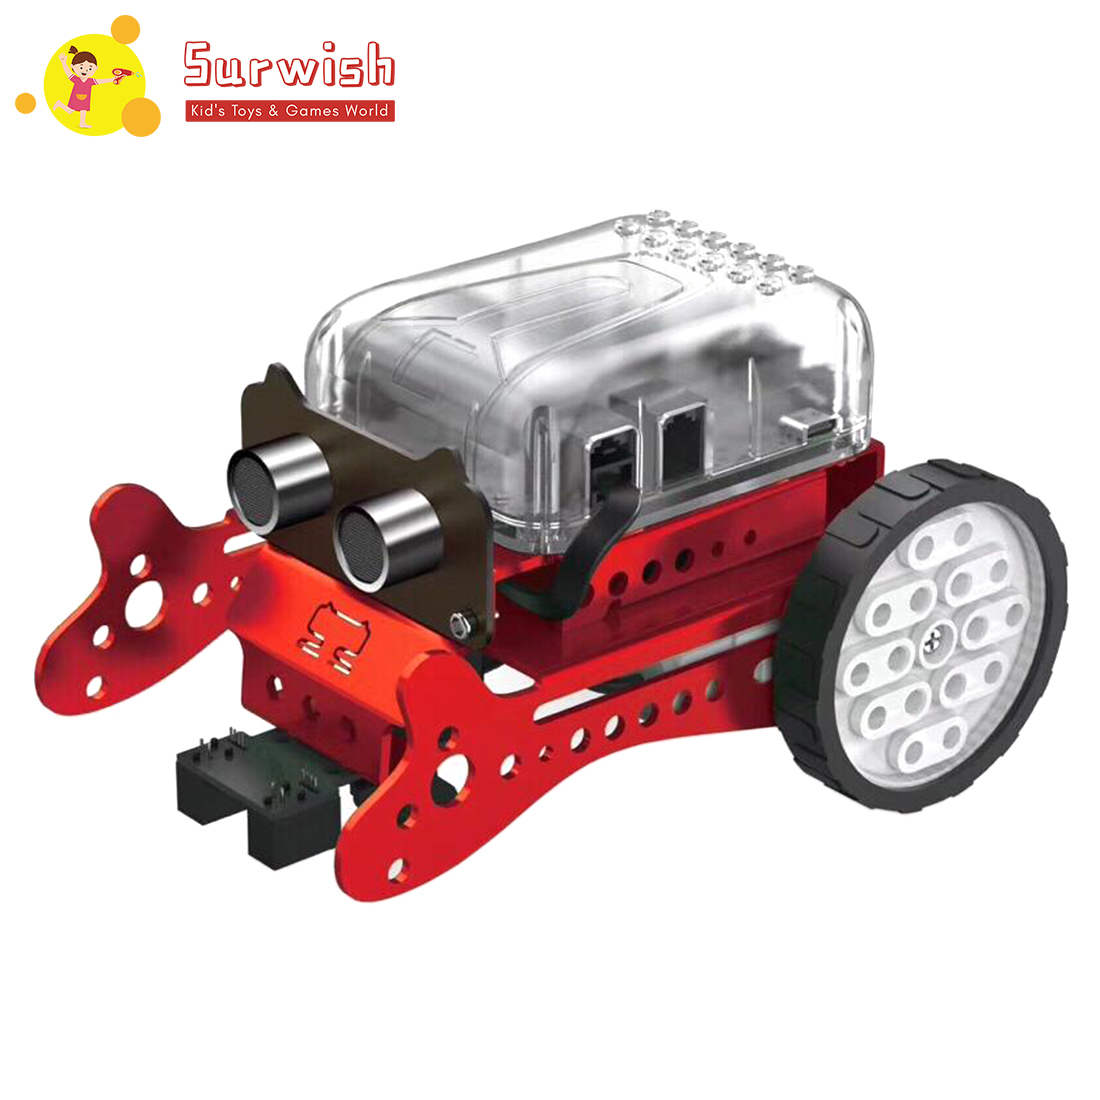 Surwish DIY Neo Programming Scratch Intelligent Obstacle Avoidance Car Robot Kit - Red/Green